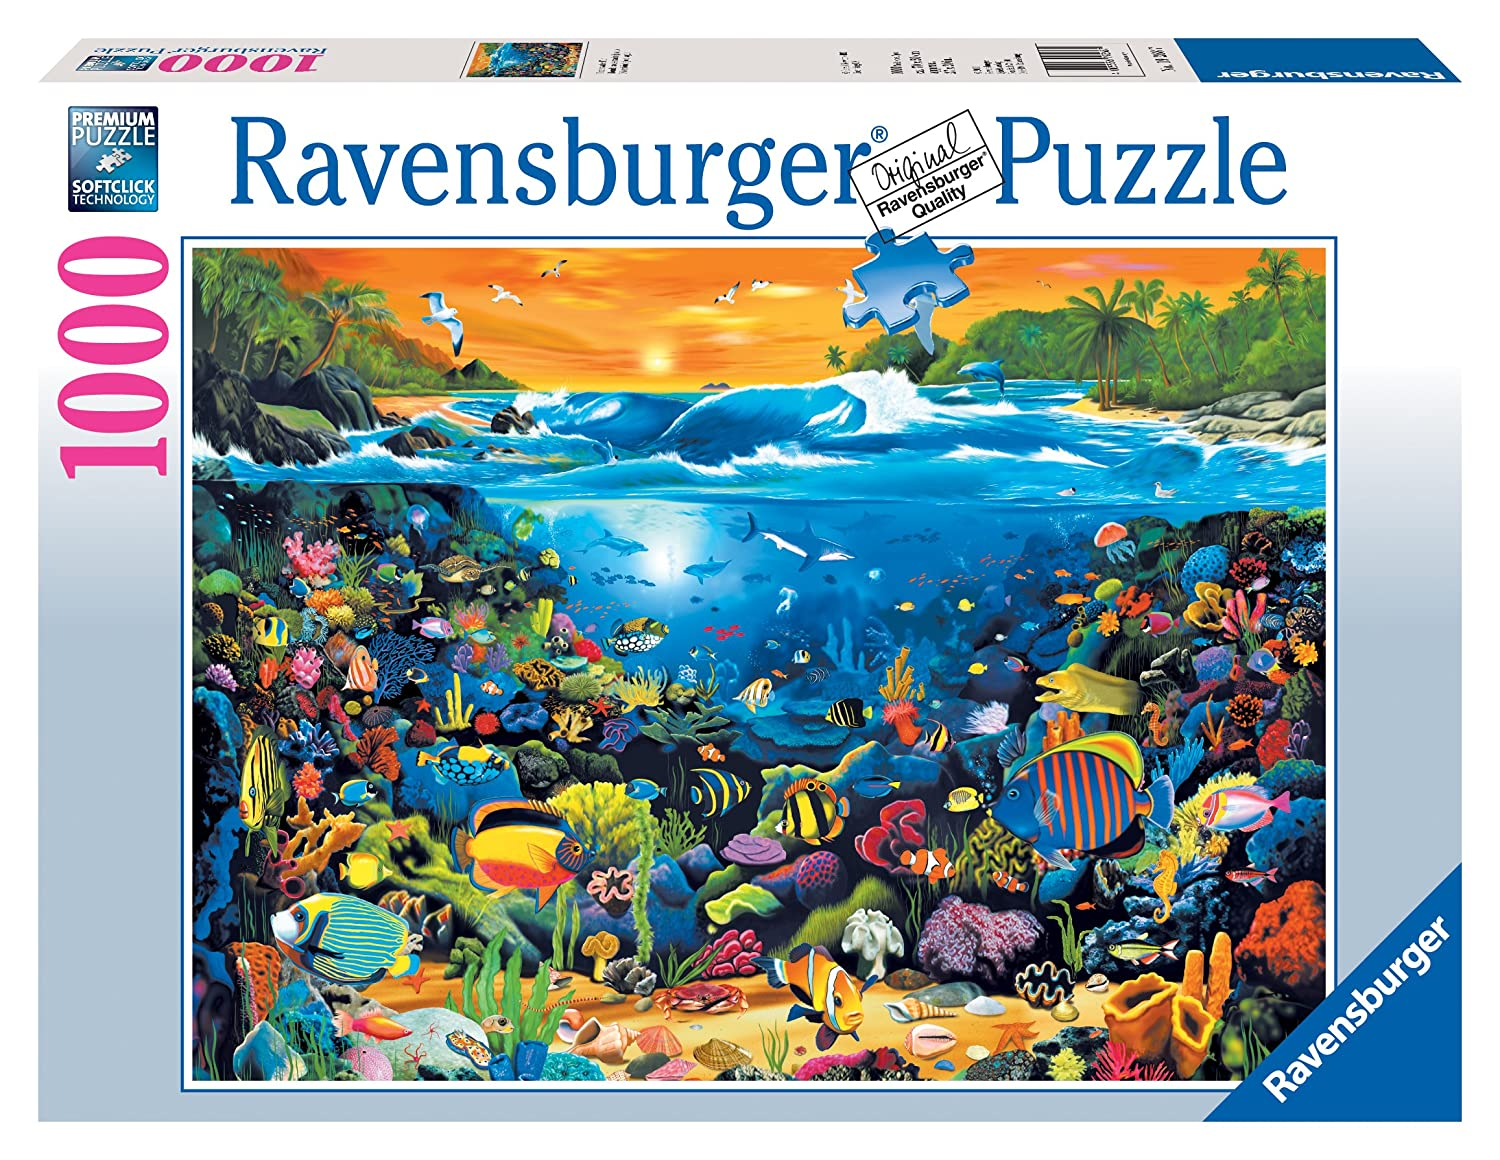 Ravensburger  Puzzles Up to 50% Off